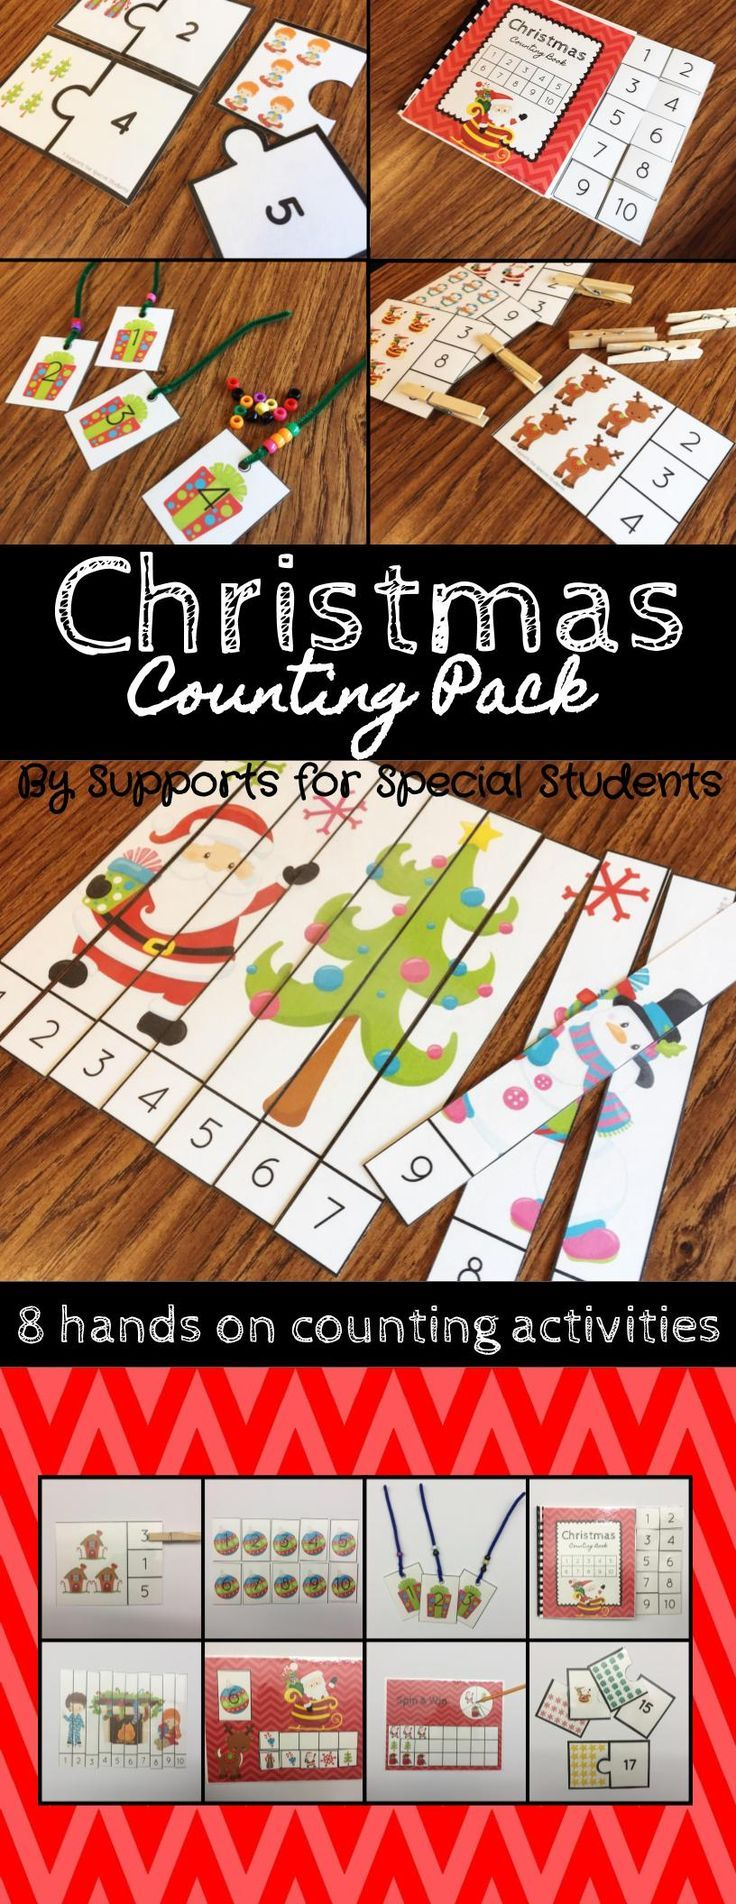 This Christmas counting pack is perfect for preschool, kindergarten or a special education classroom. There are 8 hands on activities that focus on numbers 1-20 included in this pack. These activities can be used during 1:1 and small group instruction, as well as independent practice. By Supports for Special Students